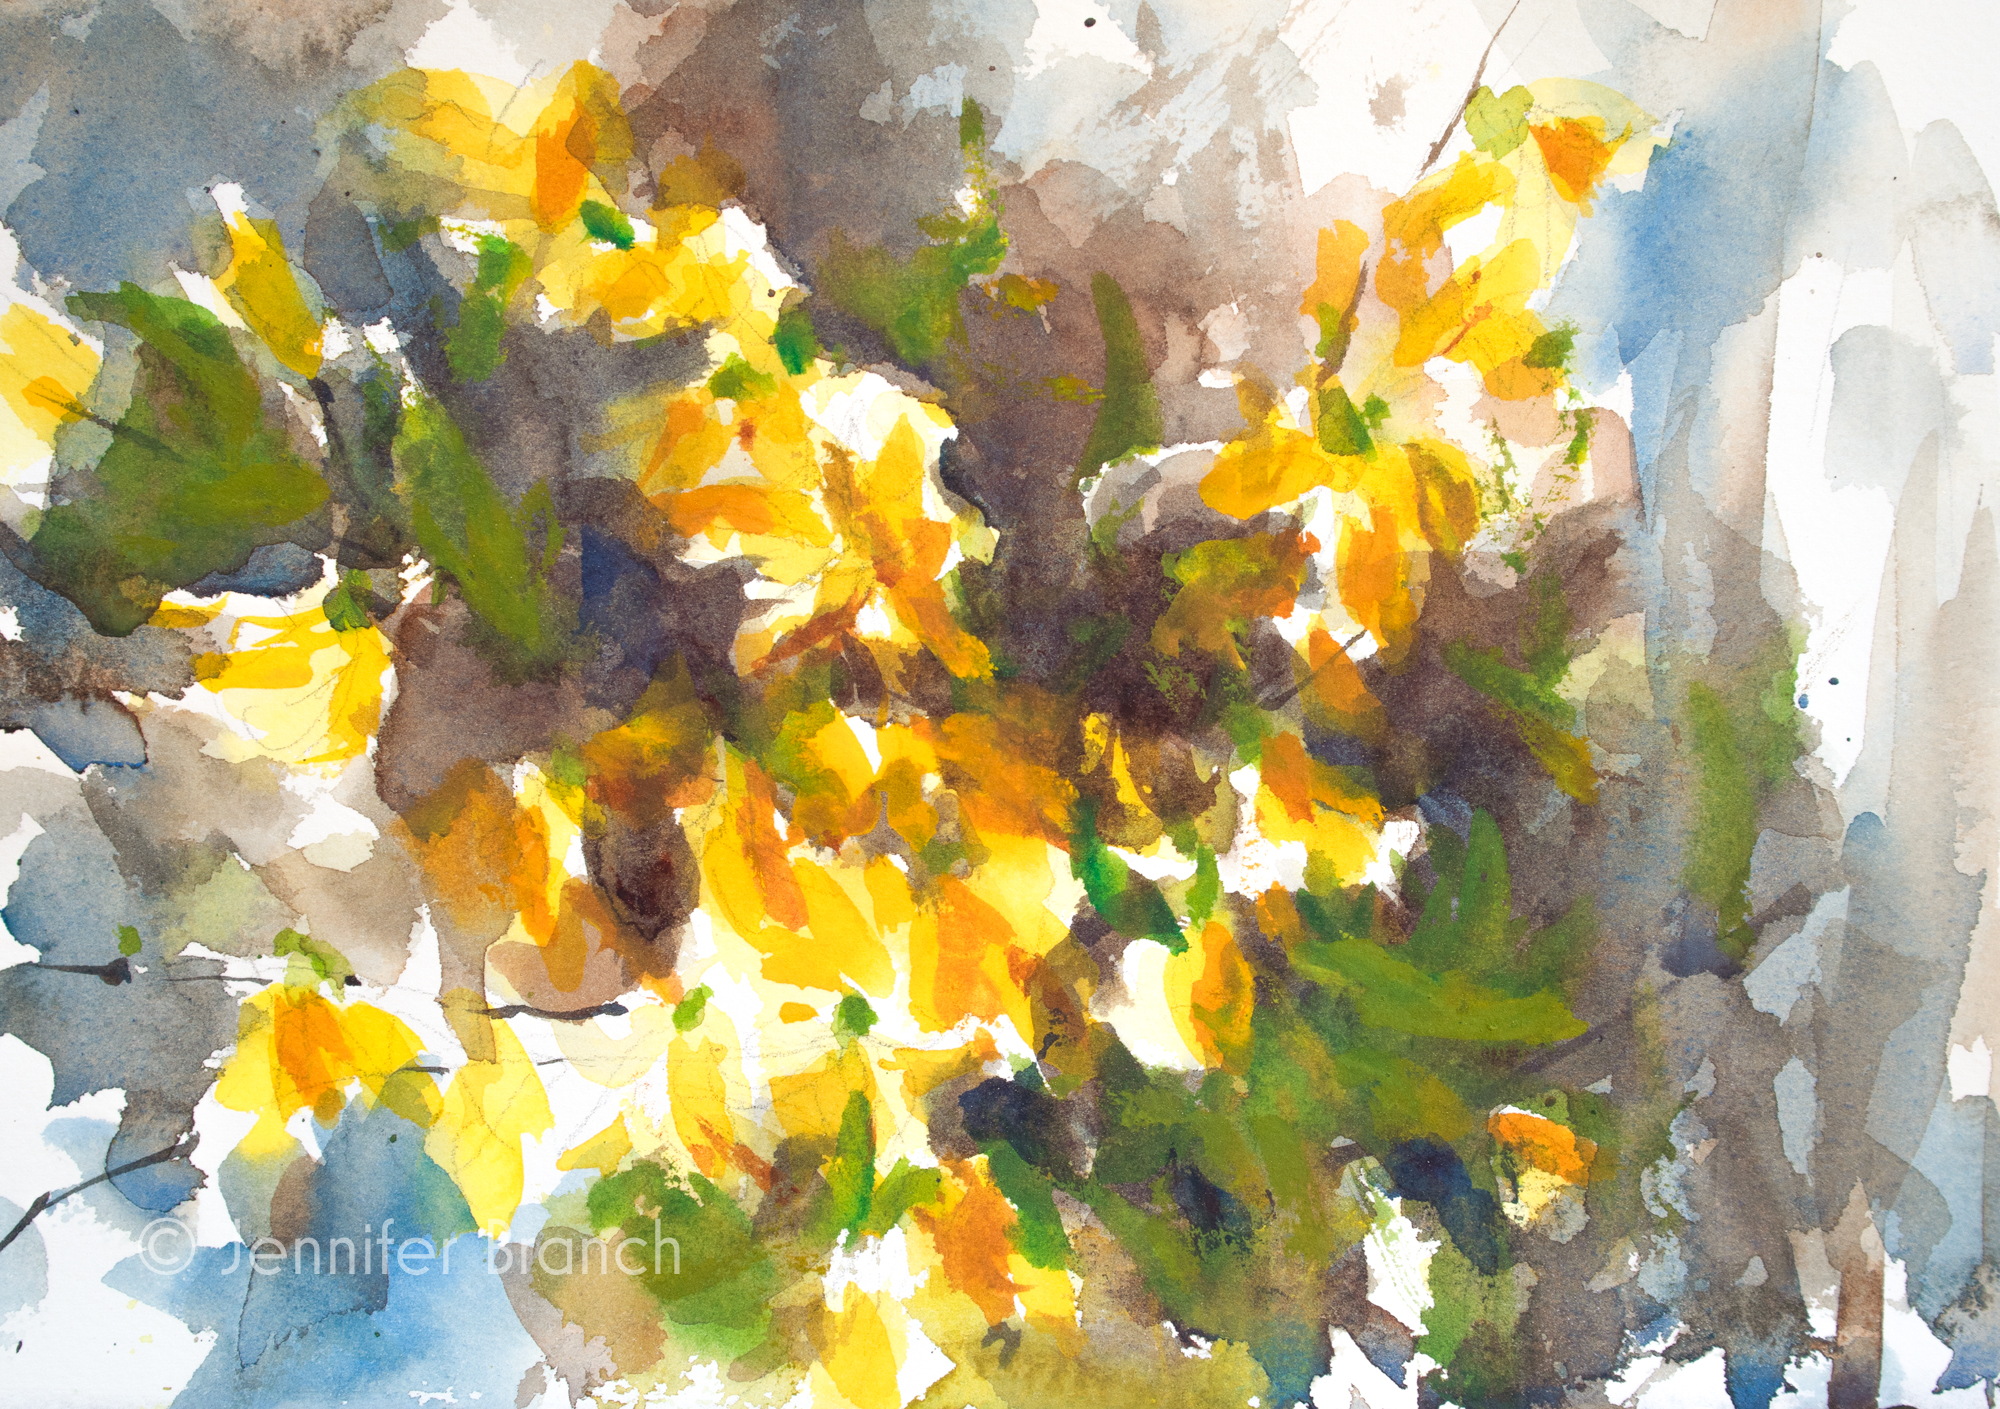 Forsythia Sketch Painting Tutorial watercolor painting lesson by Jennifer Branch